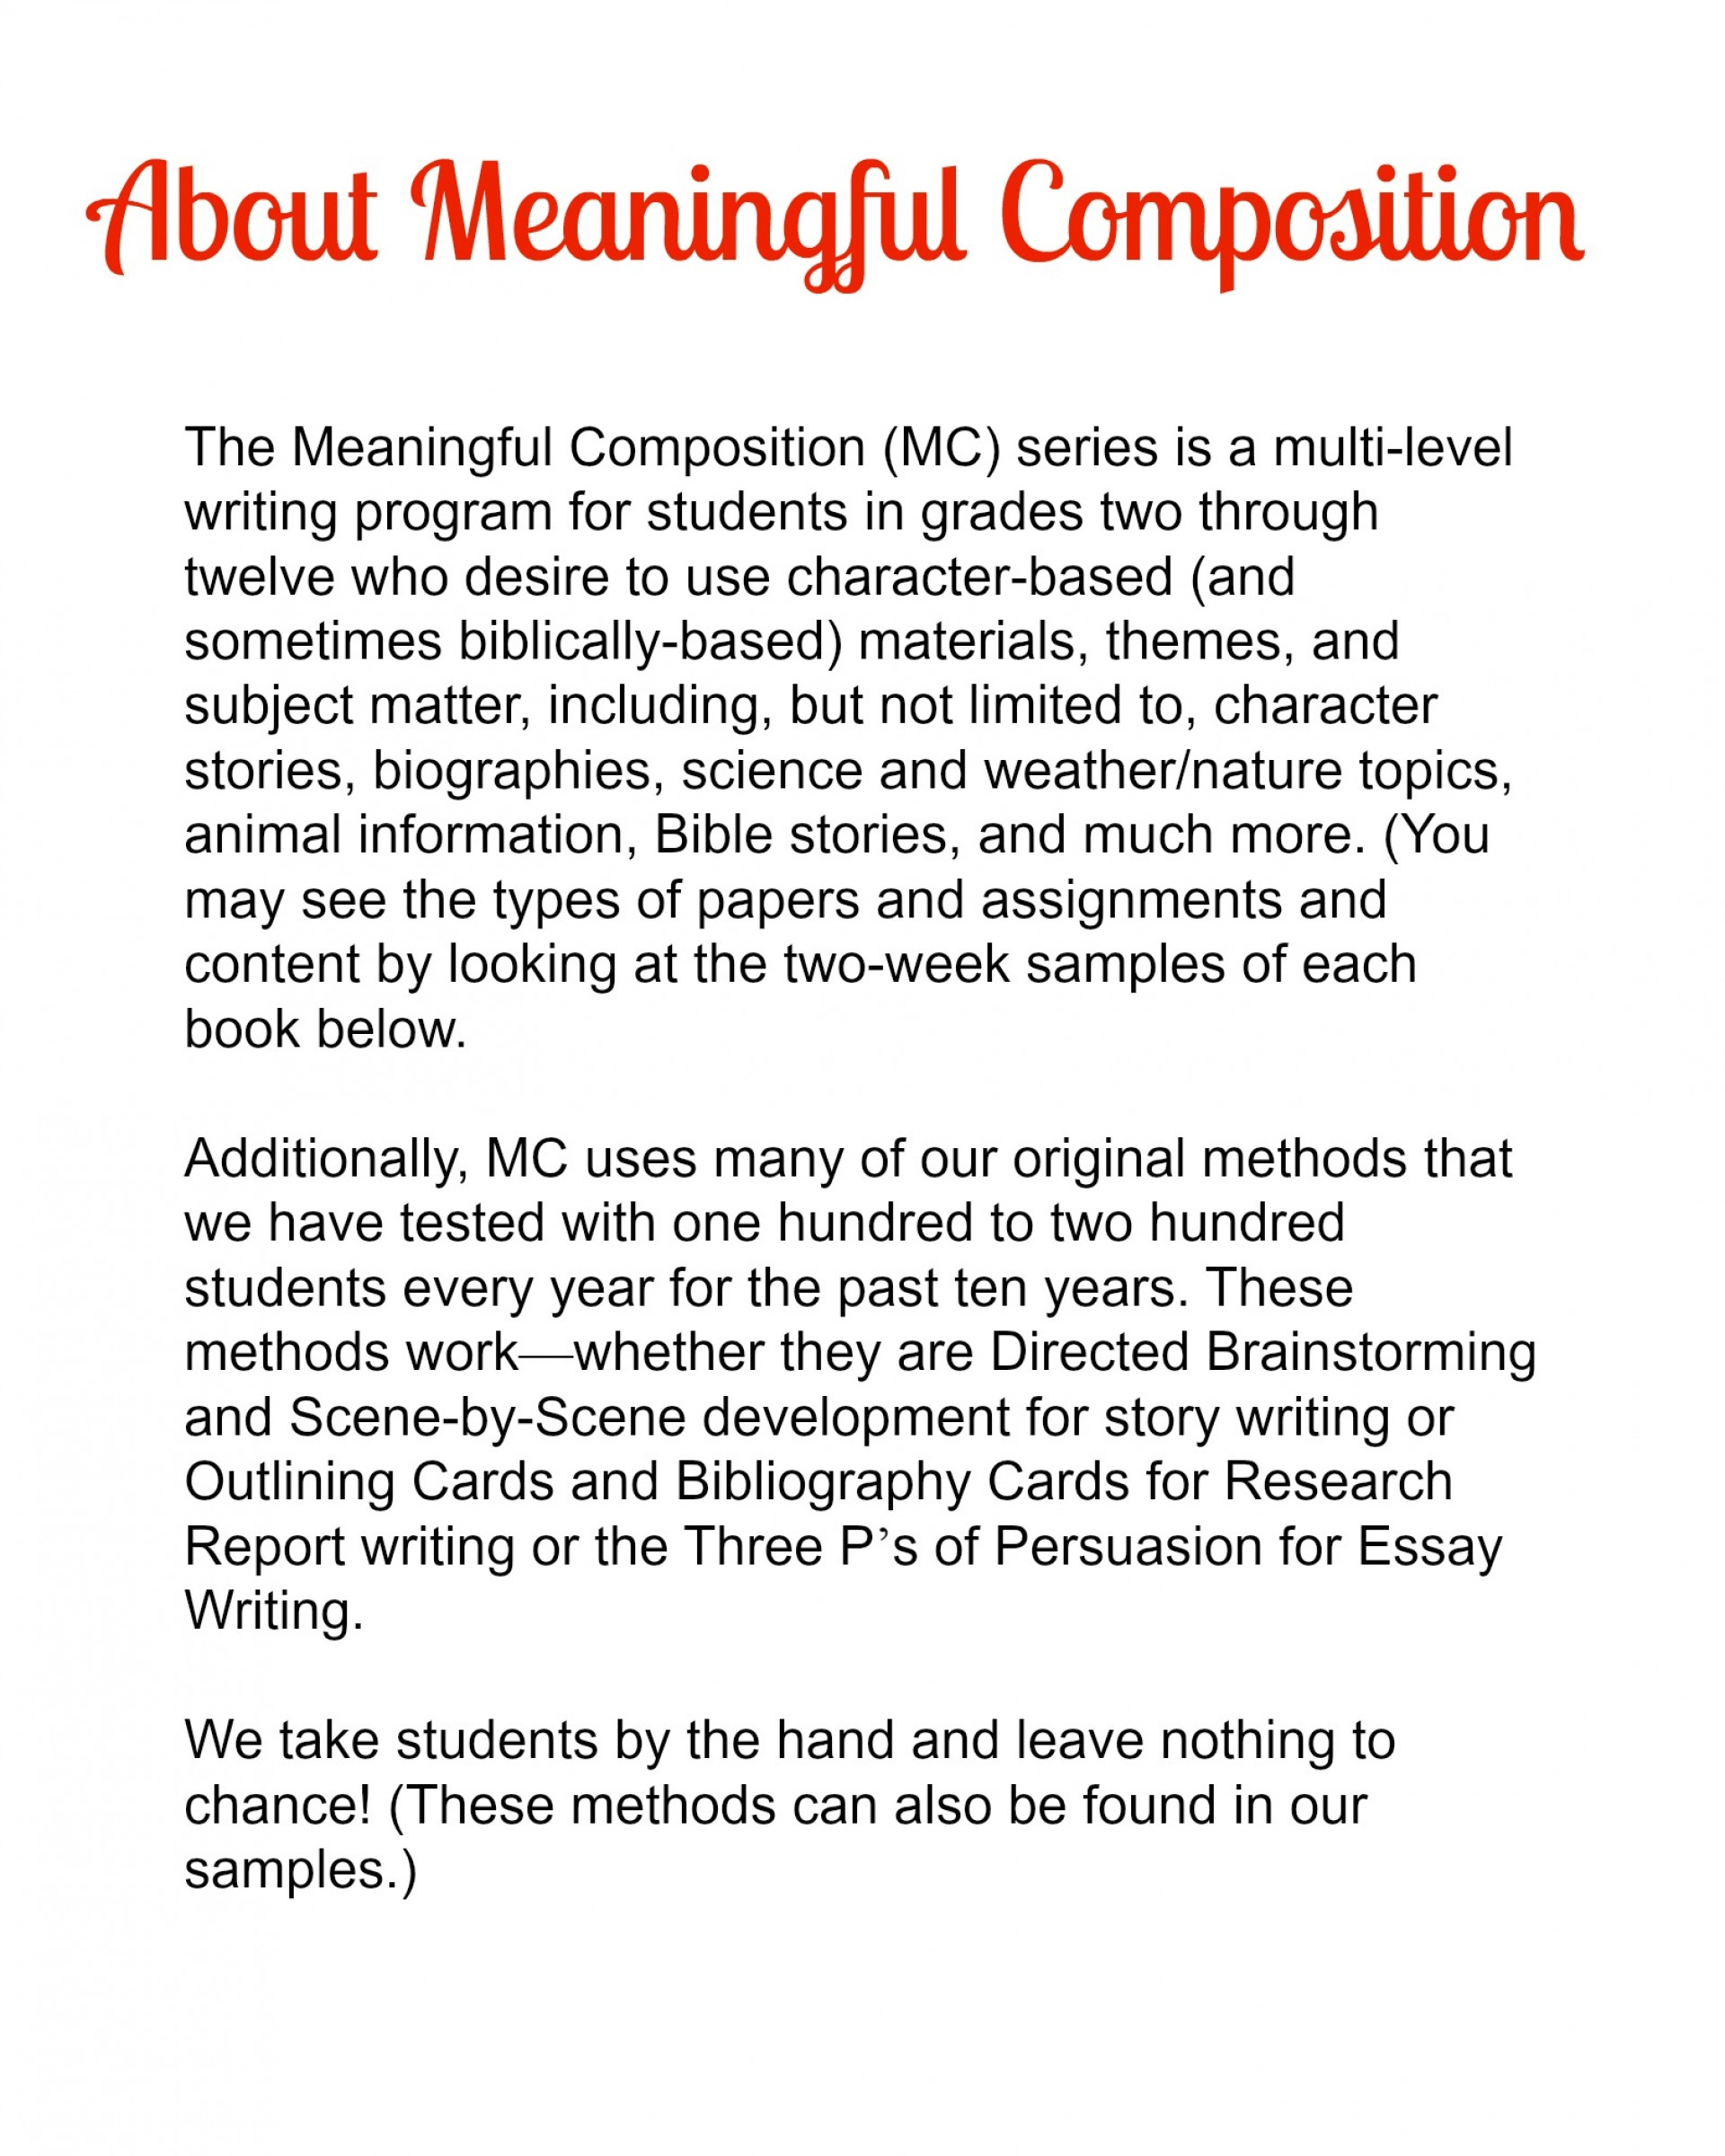 022 Examples Of Persuasive Essays Expository Essay Introductions Creative Writing Course Paragraph On Bullying About Meaningful Compos Cyber How To Prevent Five Excellent For Fifth Graders Written By 5th 3rd Grade 1920